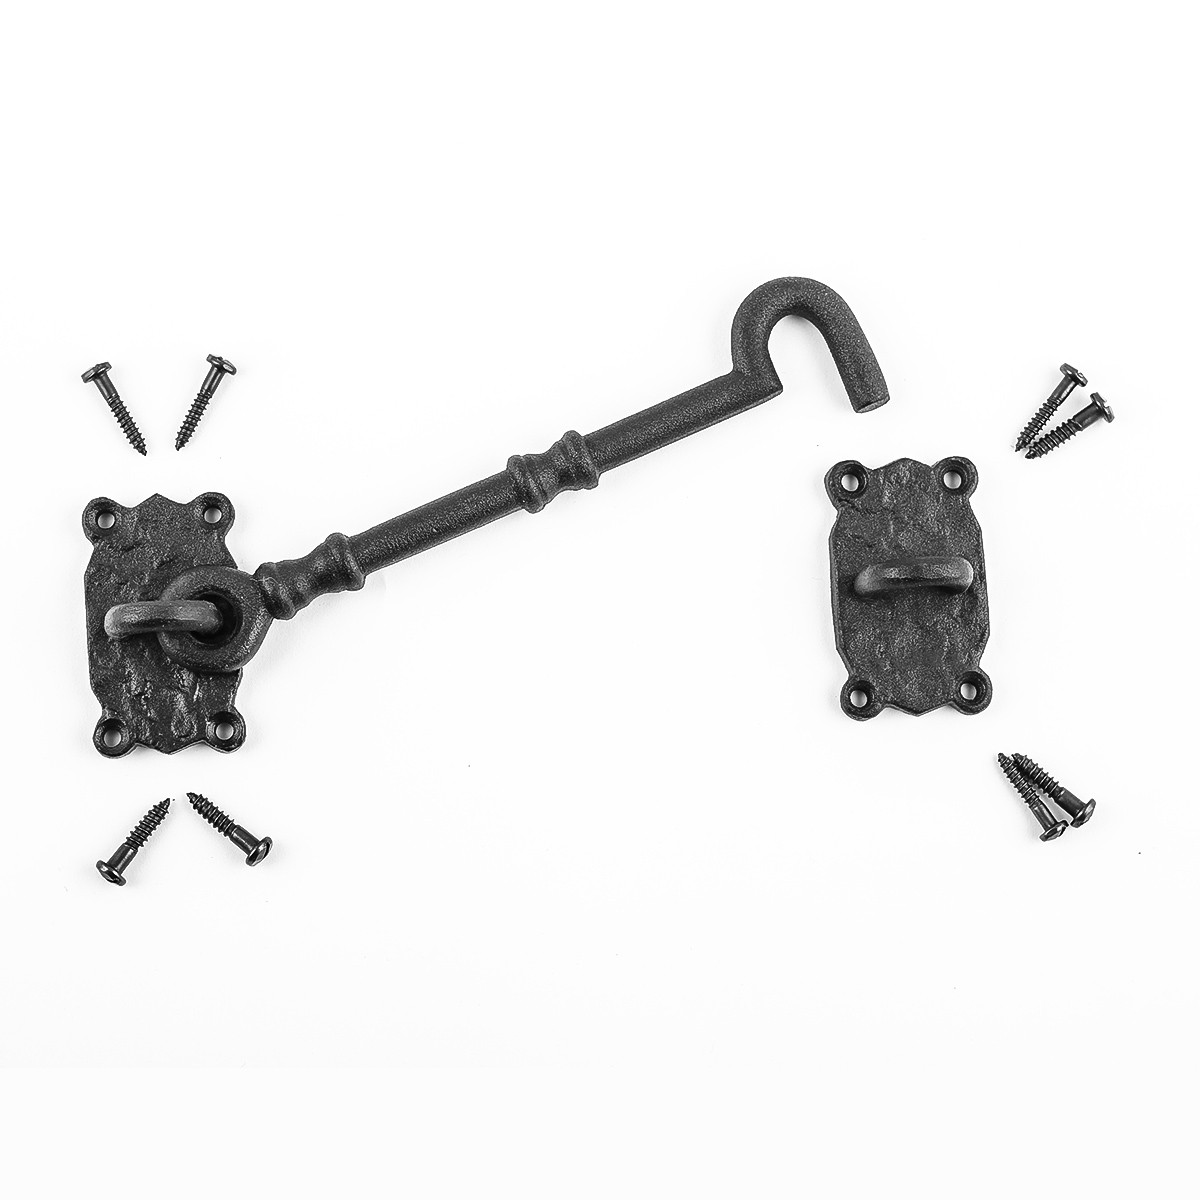 Cabin Hook Privacy Latch 7.25 Wrought Iron Screws Included Set of 6 Cabin Hooks Cabin Hooks And Latches Privacy latch